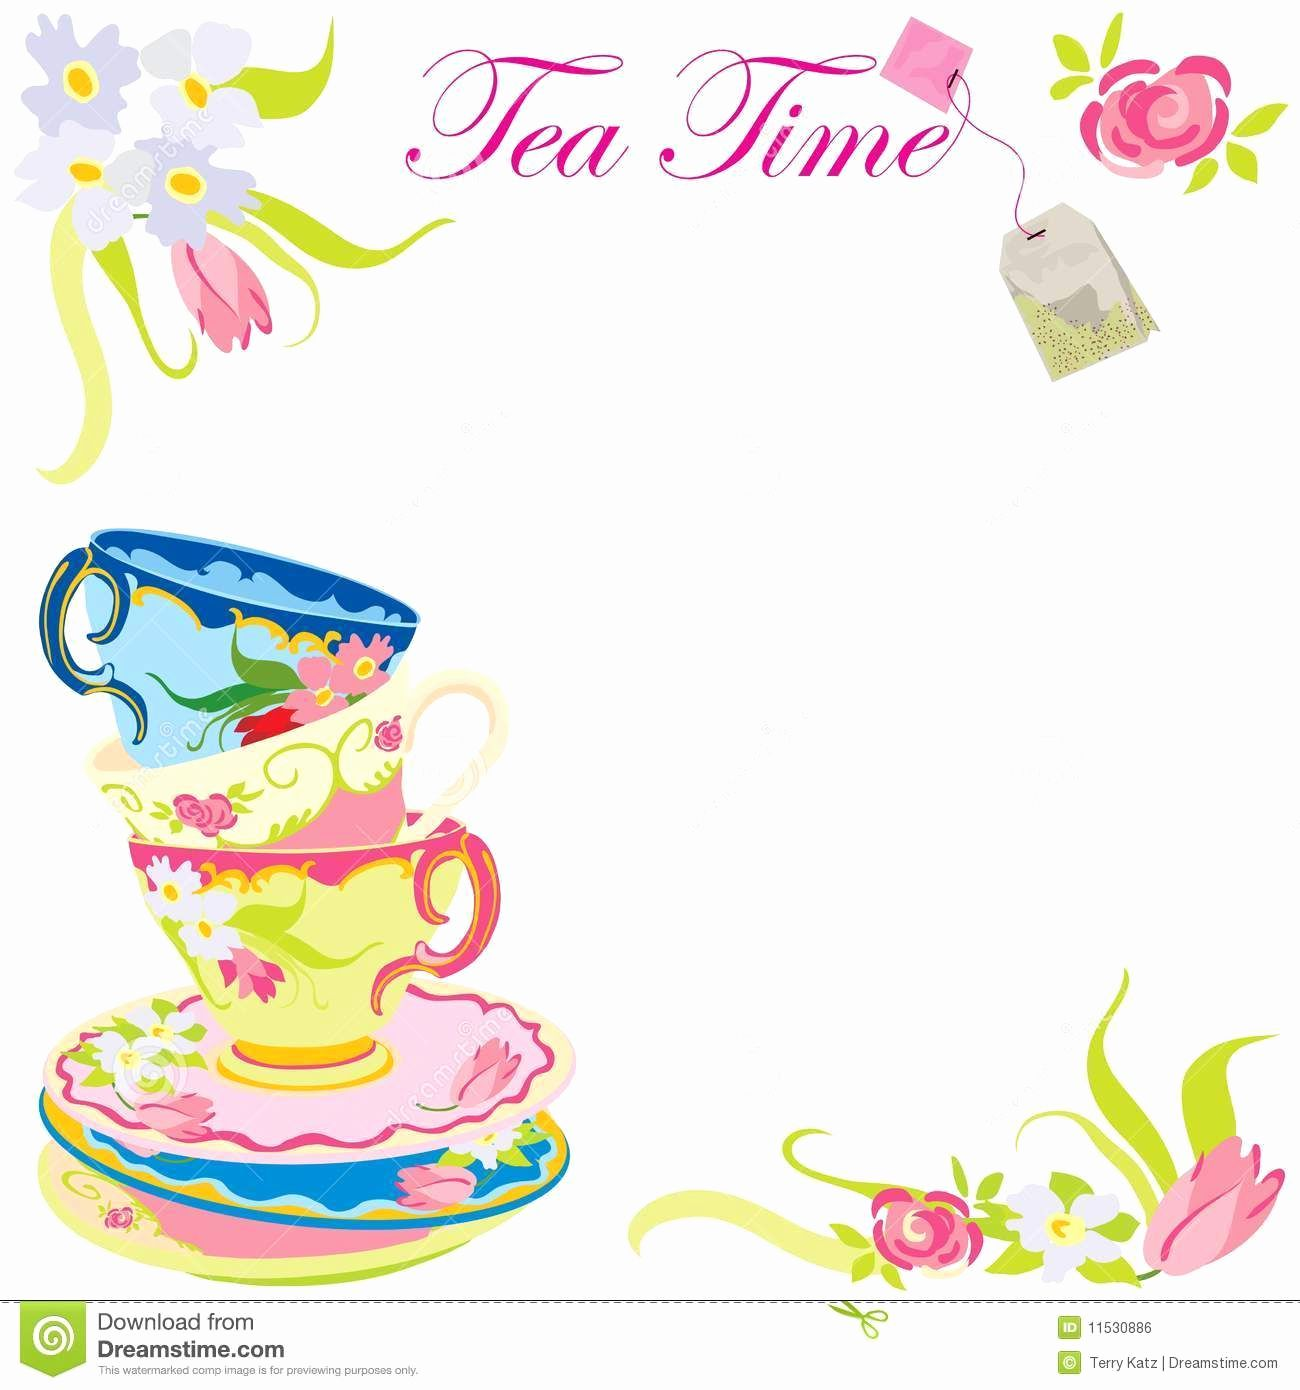 010 Fascinating Tea Party Invitation Template Image  Templates High Free Download Bridal ShowerFull